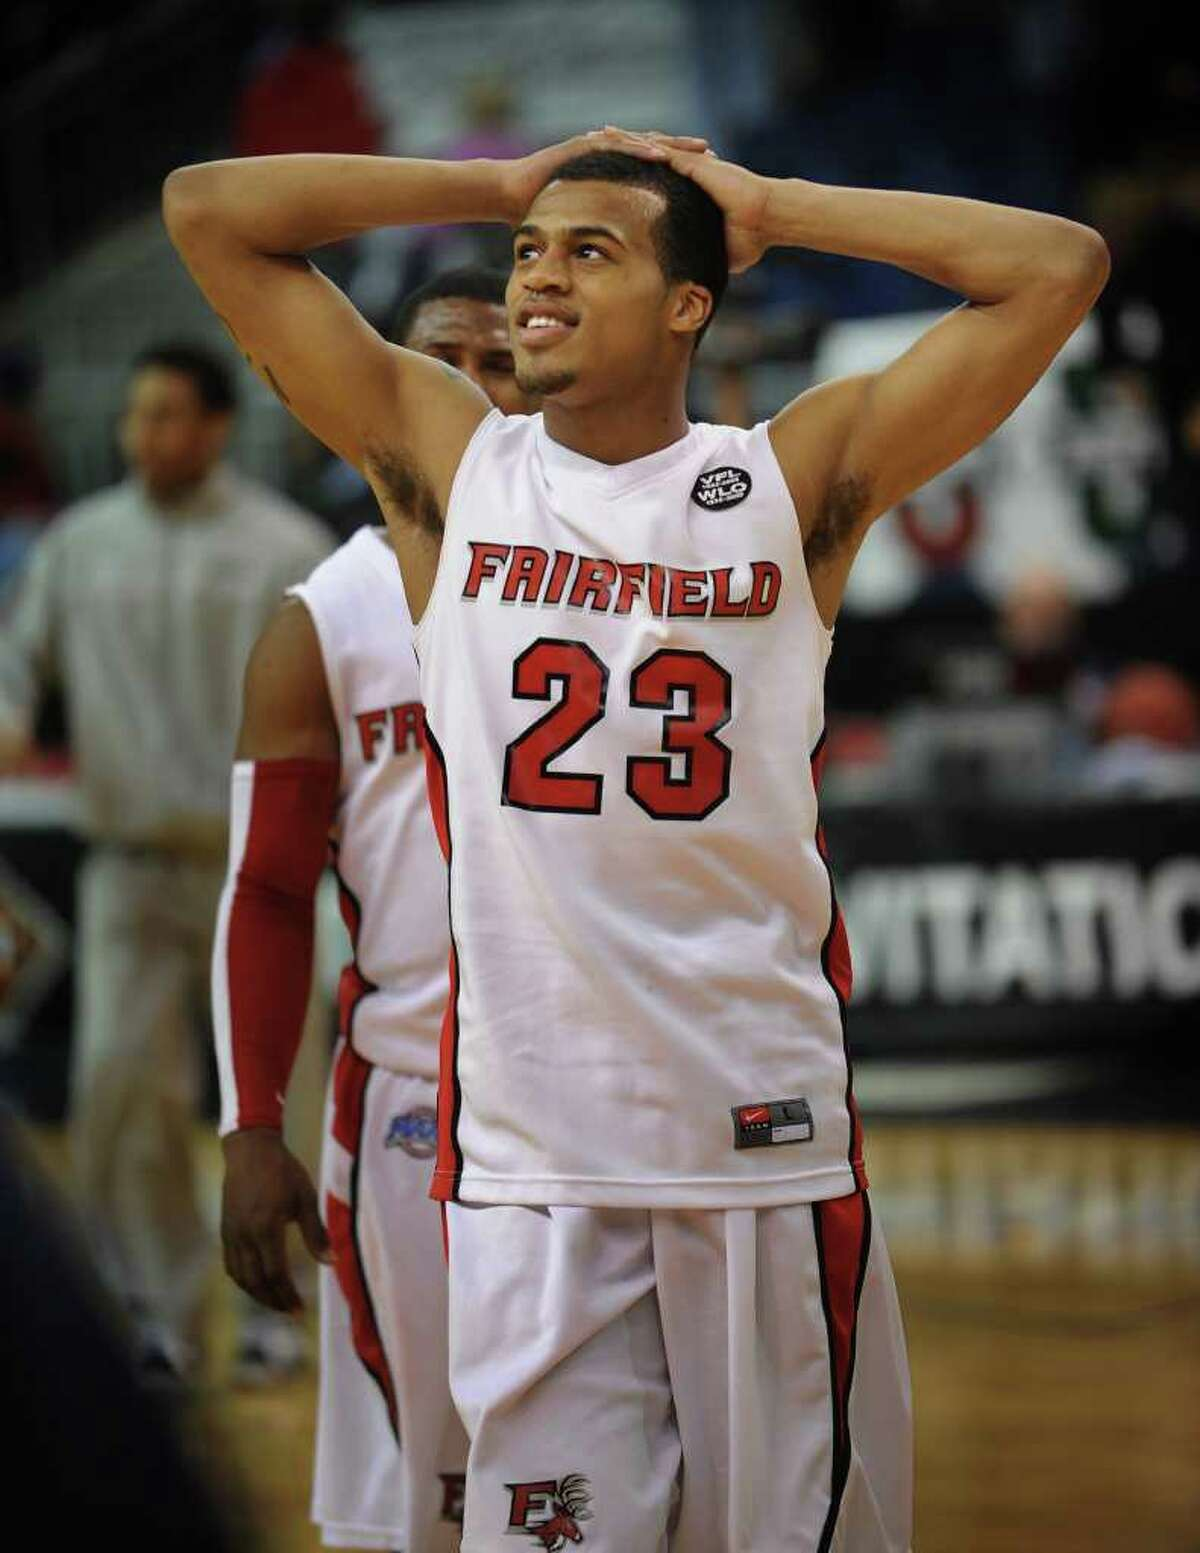 Fairfield University's Jamel Fields looks up at the scoreboard as he walks off the court following the Stags' loss to Kent State in the second round of the NIT at the Webster Bank Arena at Harbor Yard in Bridgeport on Sunday, March 20, 2011.